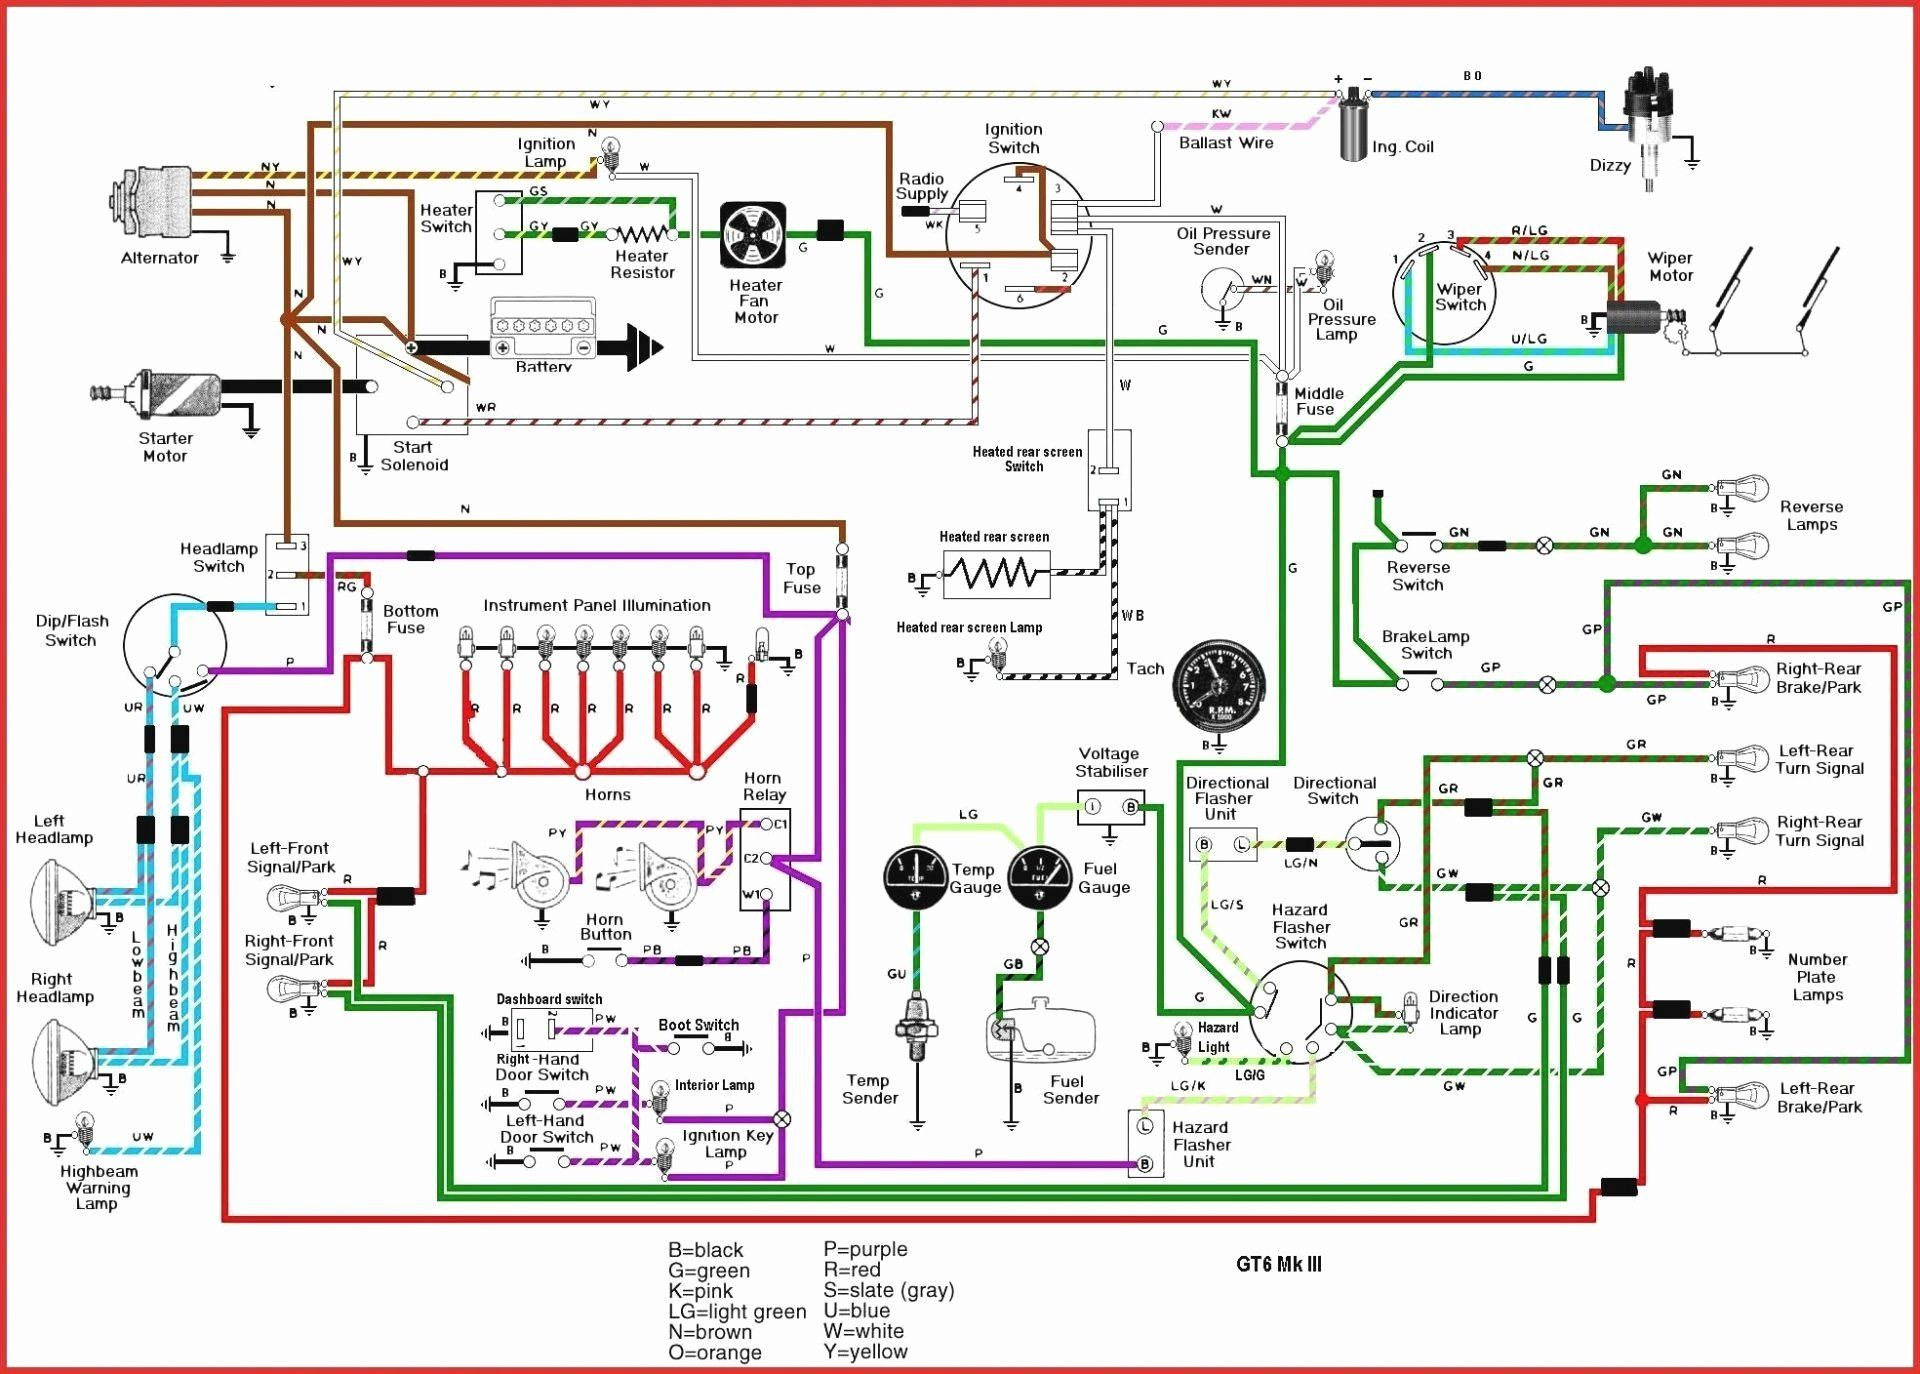 Electrical Engineering Design and Drawing Book Pdf Awesome Wiring Diagrams  Book Do You … in 2020 | Electrical circuit diagram, Electrical diagram,  Electrical wiring diagramPinterest.ie